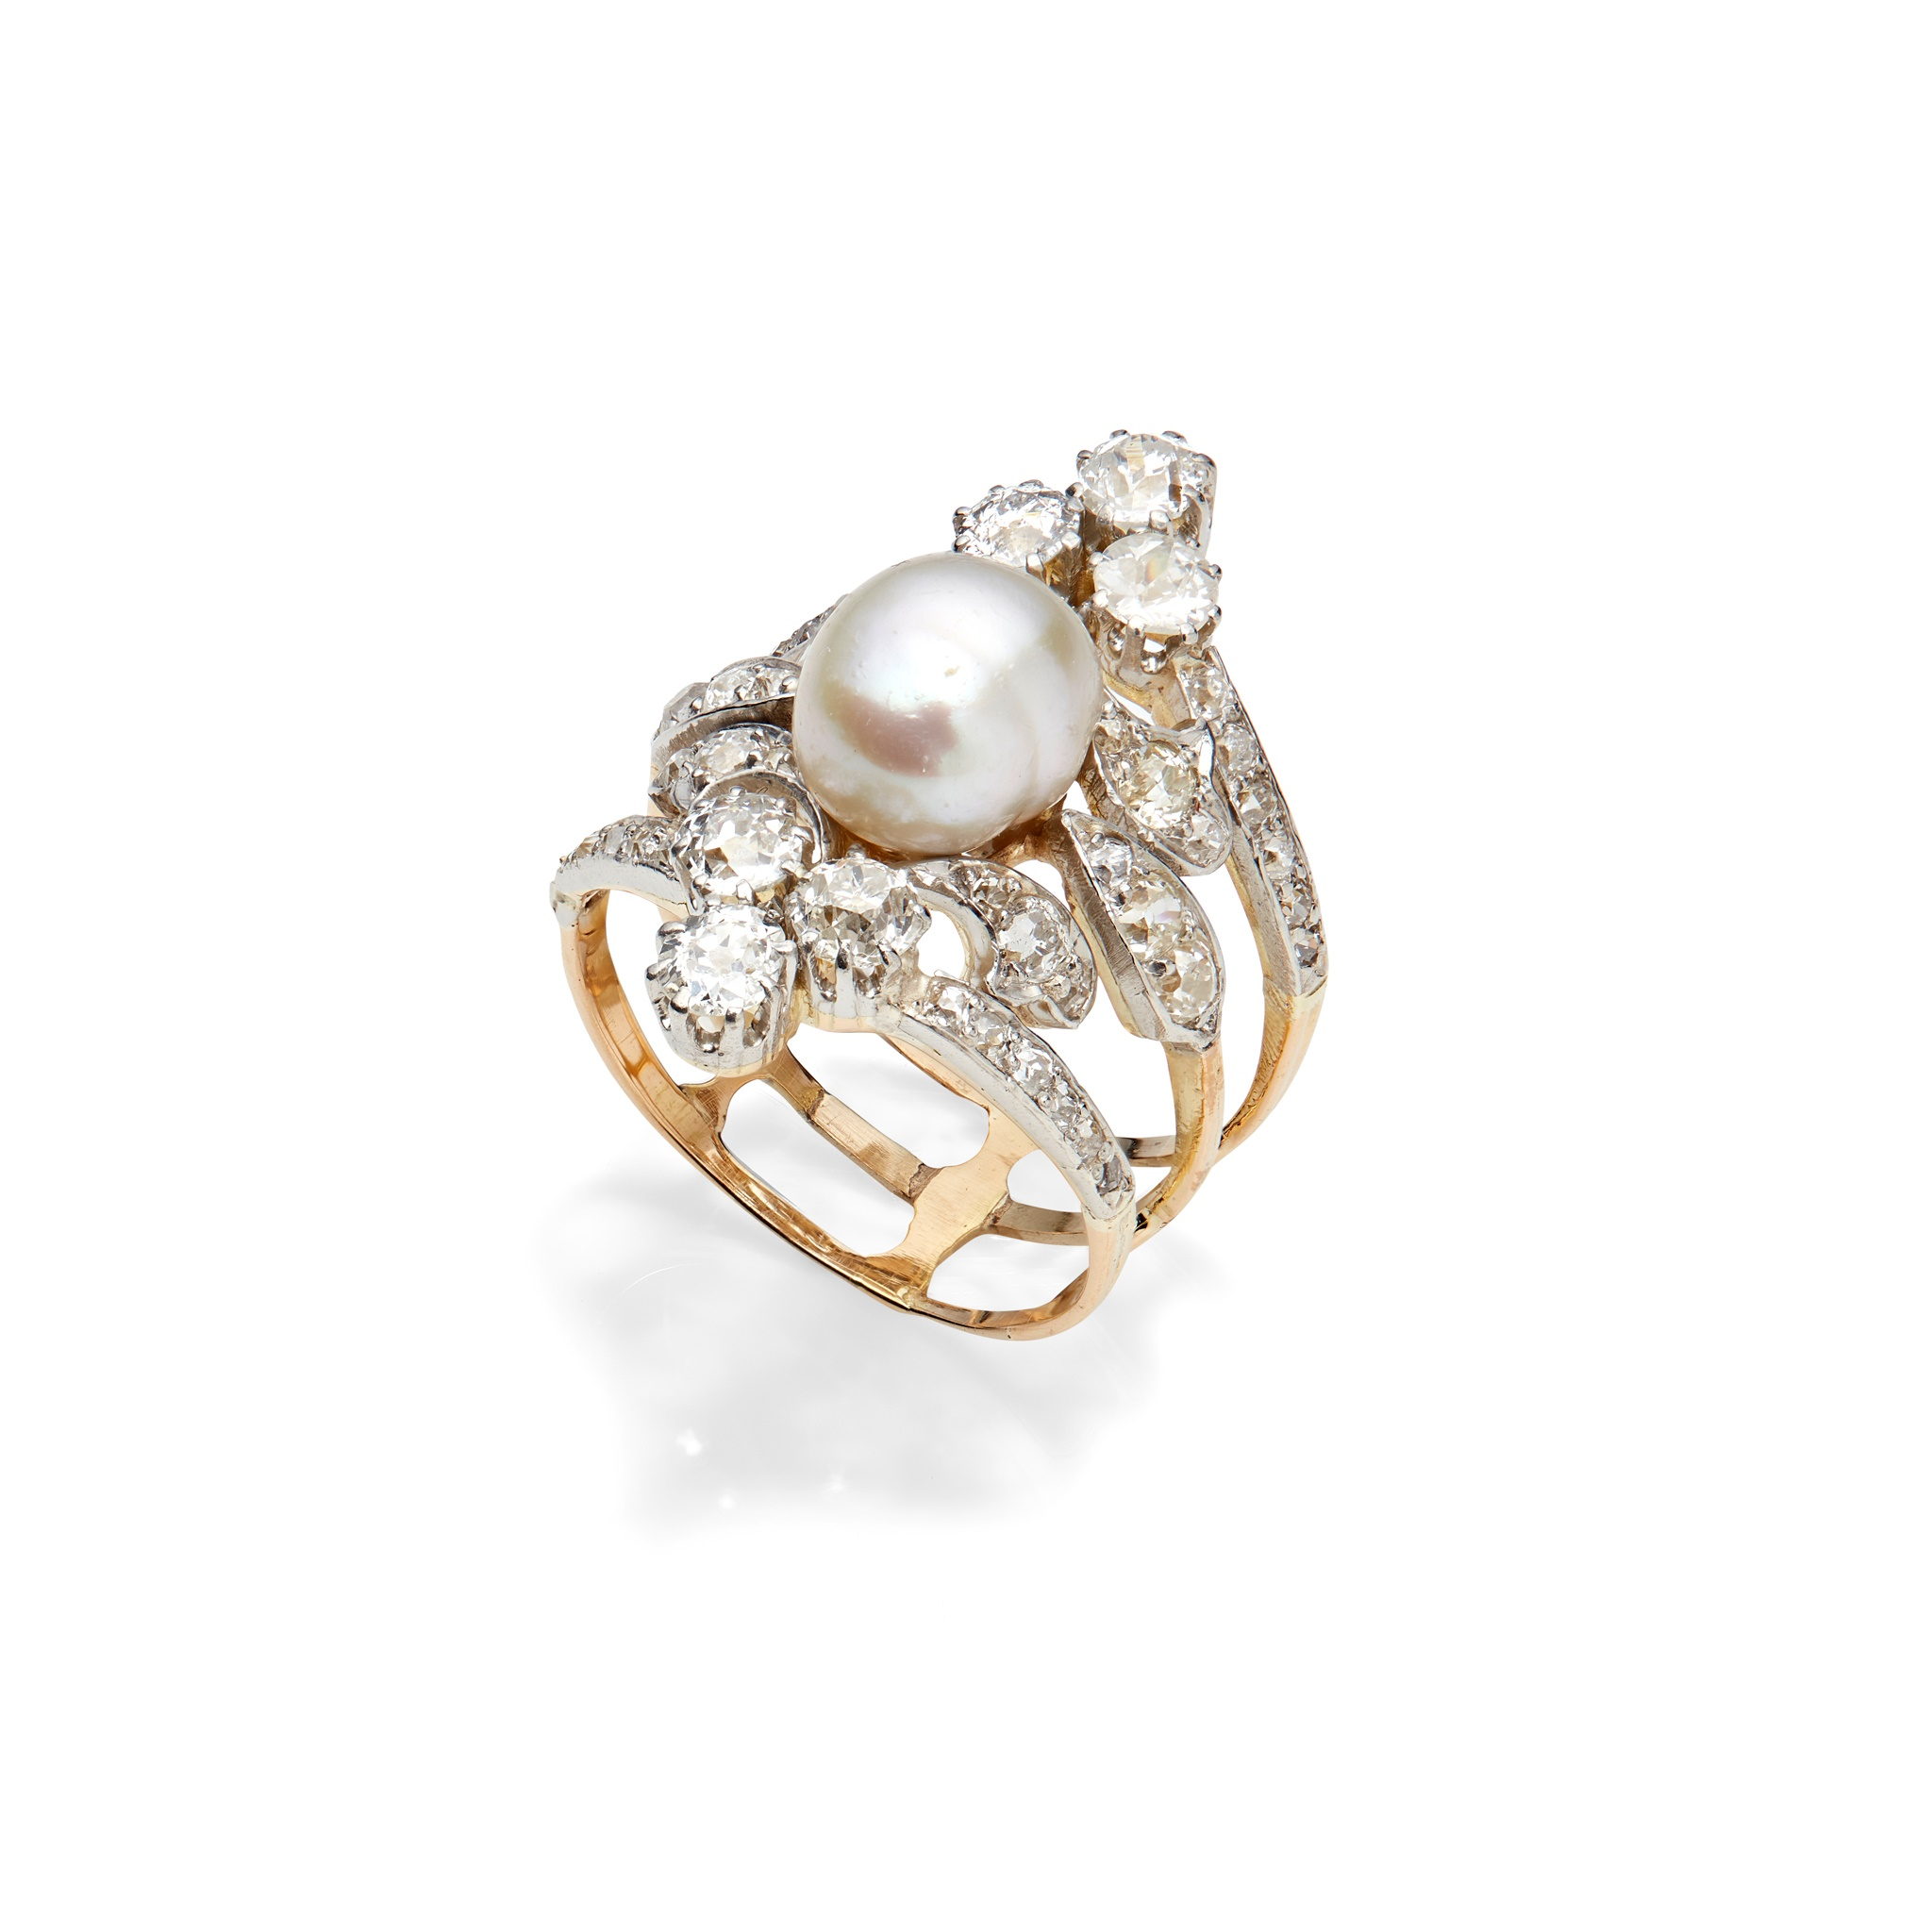 An early 20th century natural pearl and diamond ring The 8.73 x 7.87mm natural pearl mounted on a